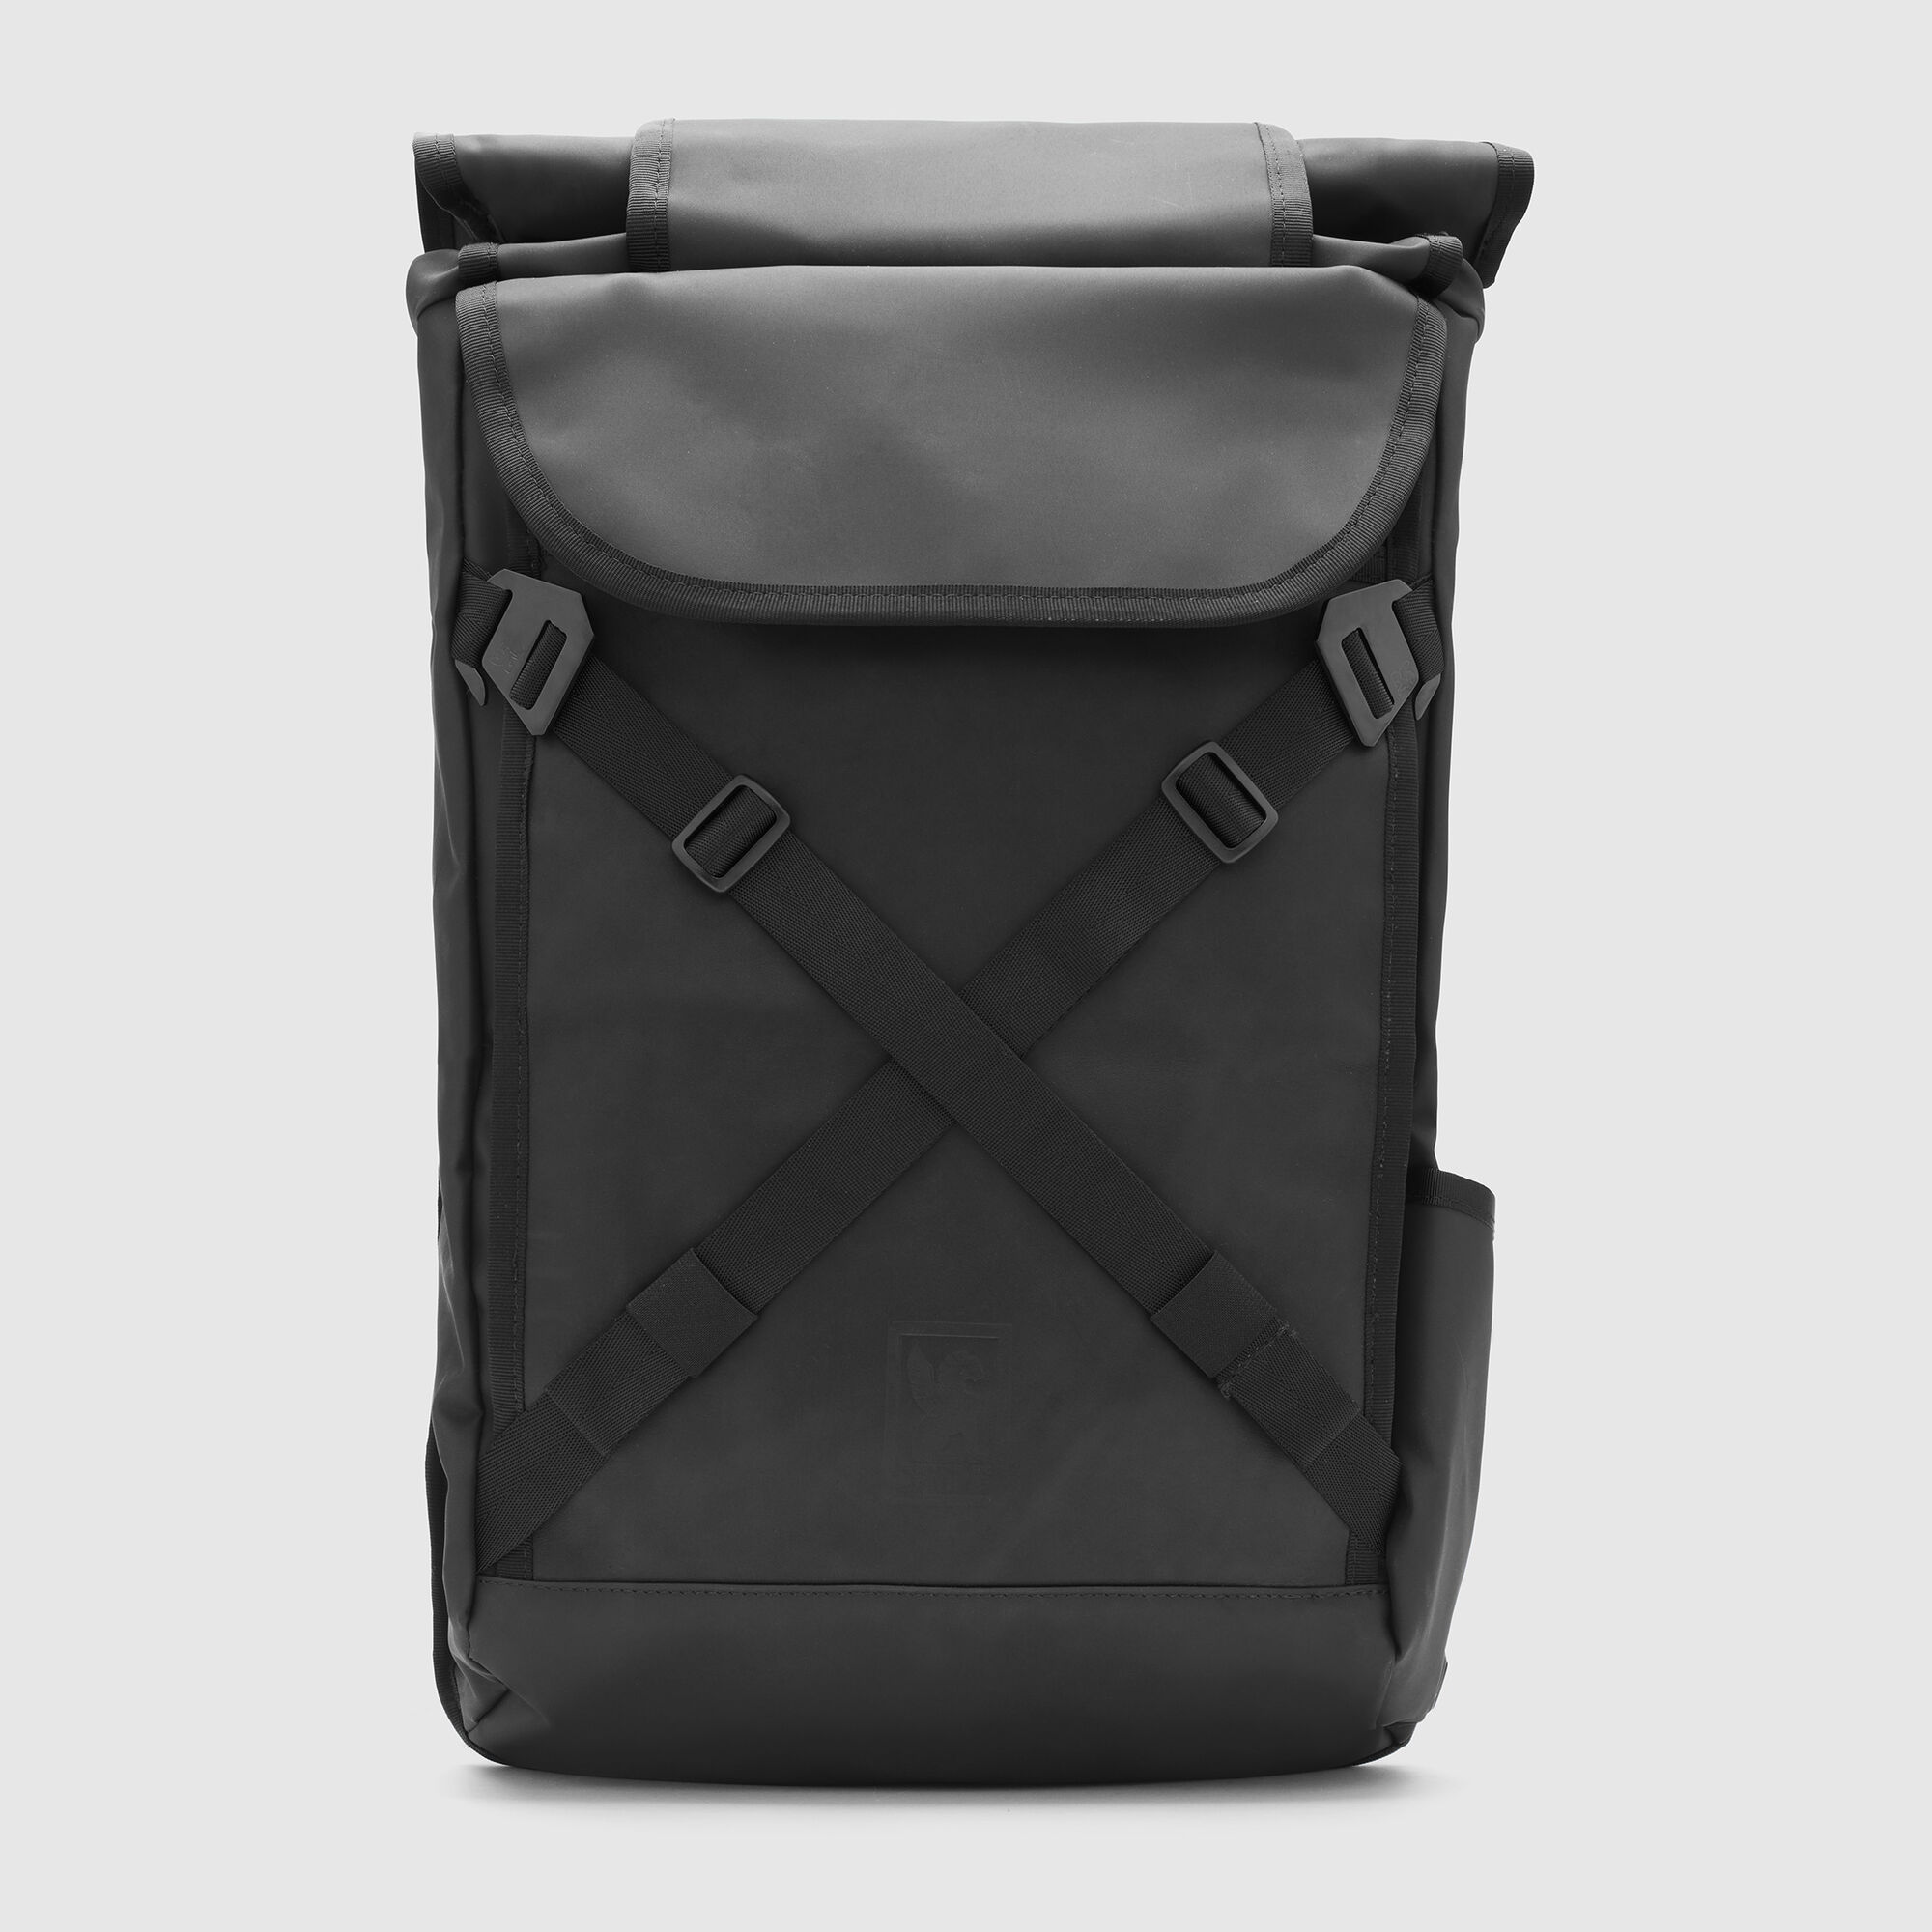 bravo 2 0 backpack fits laptops up to 15 21 h x 13 5 w x 6 d